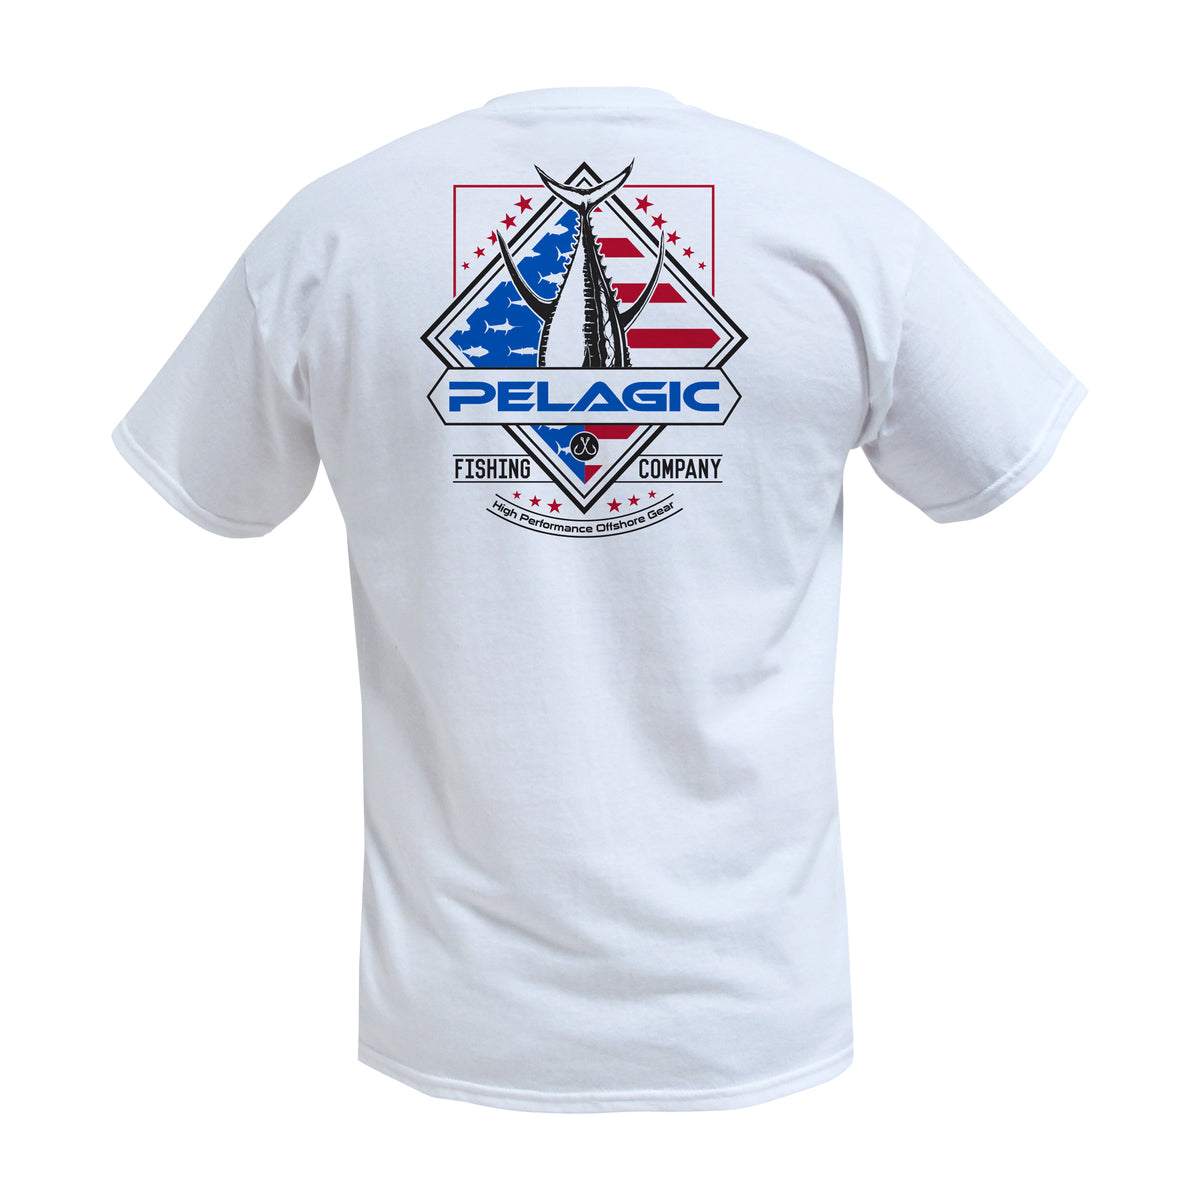 Patriot Tuna Fishing T-shirt Big Image - 1